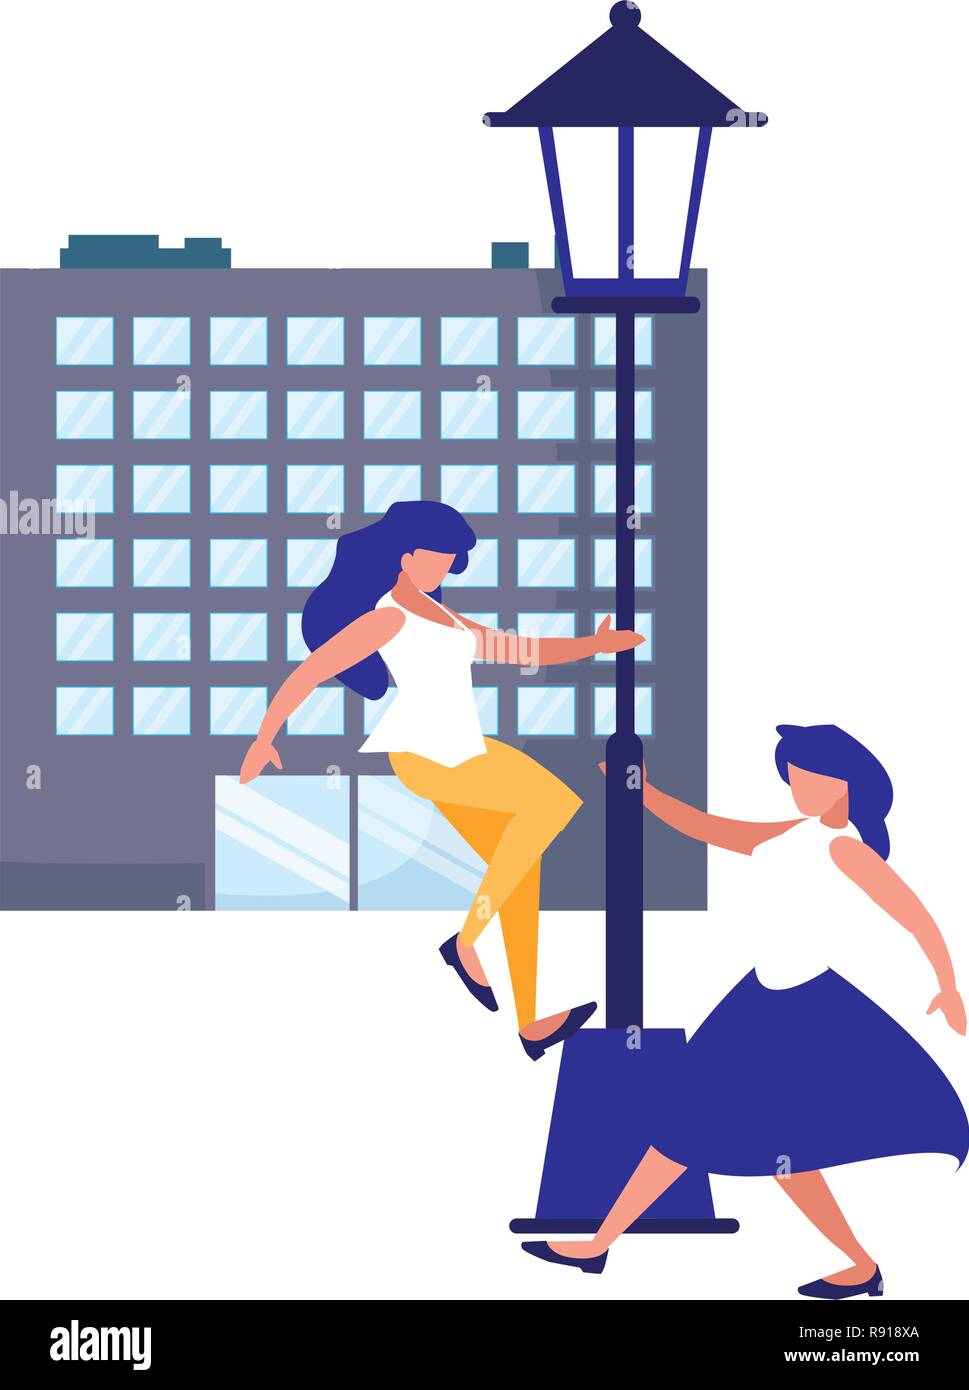 women dancing in the city place vector illustration - Stock Vector